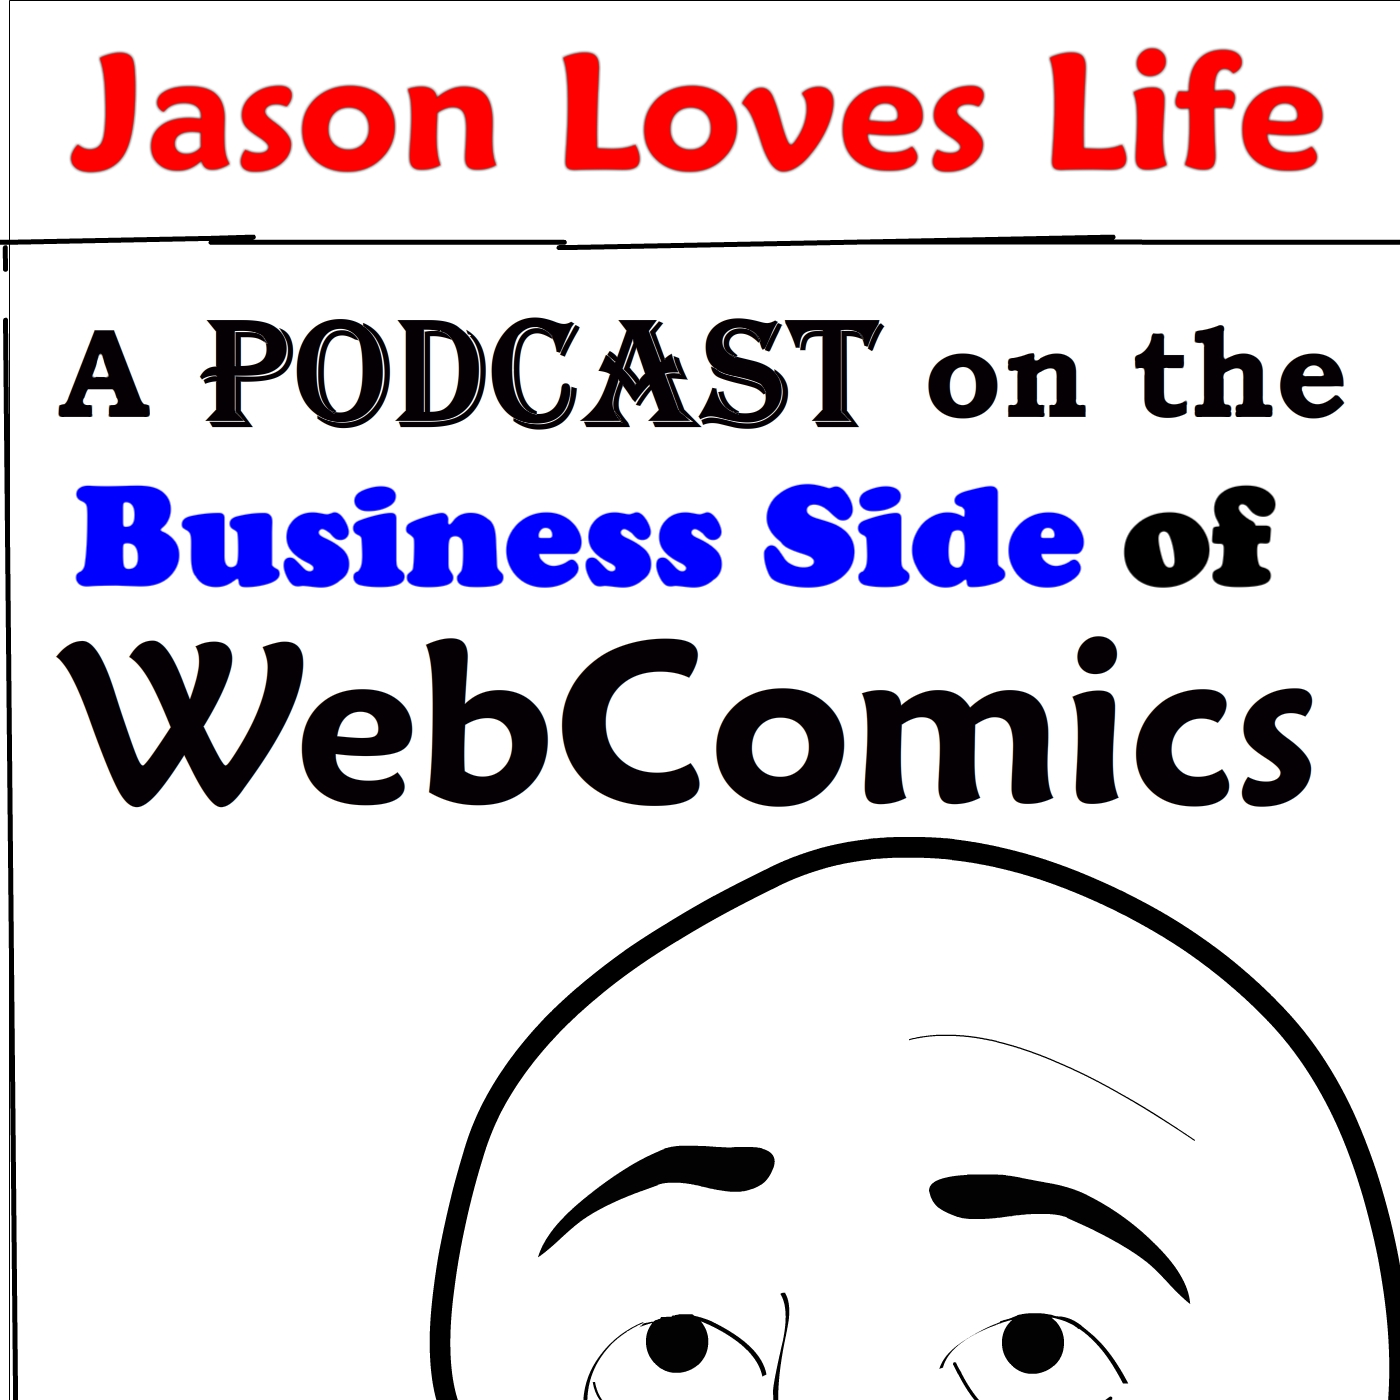 Jason Loves Life Podcast - Helping Your WebComic Live Long and Prosper